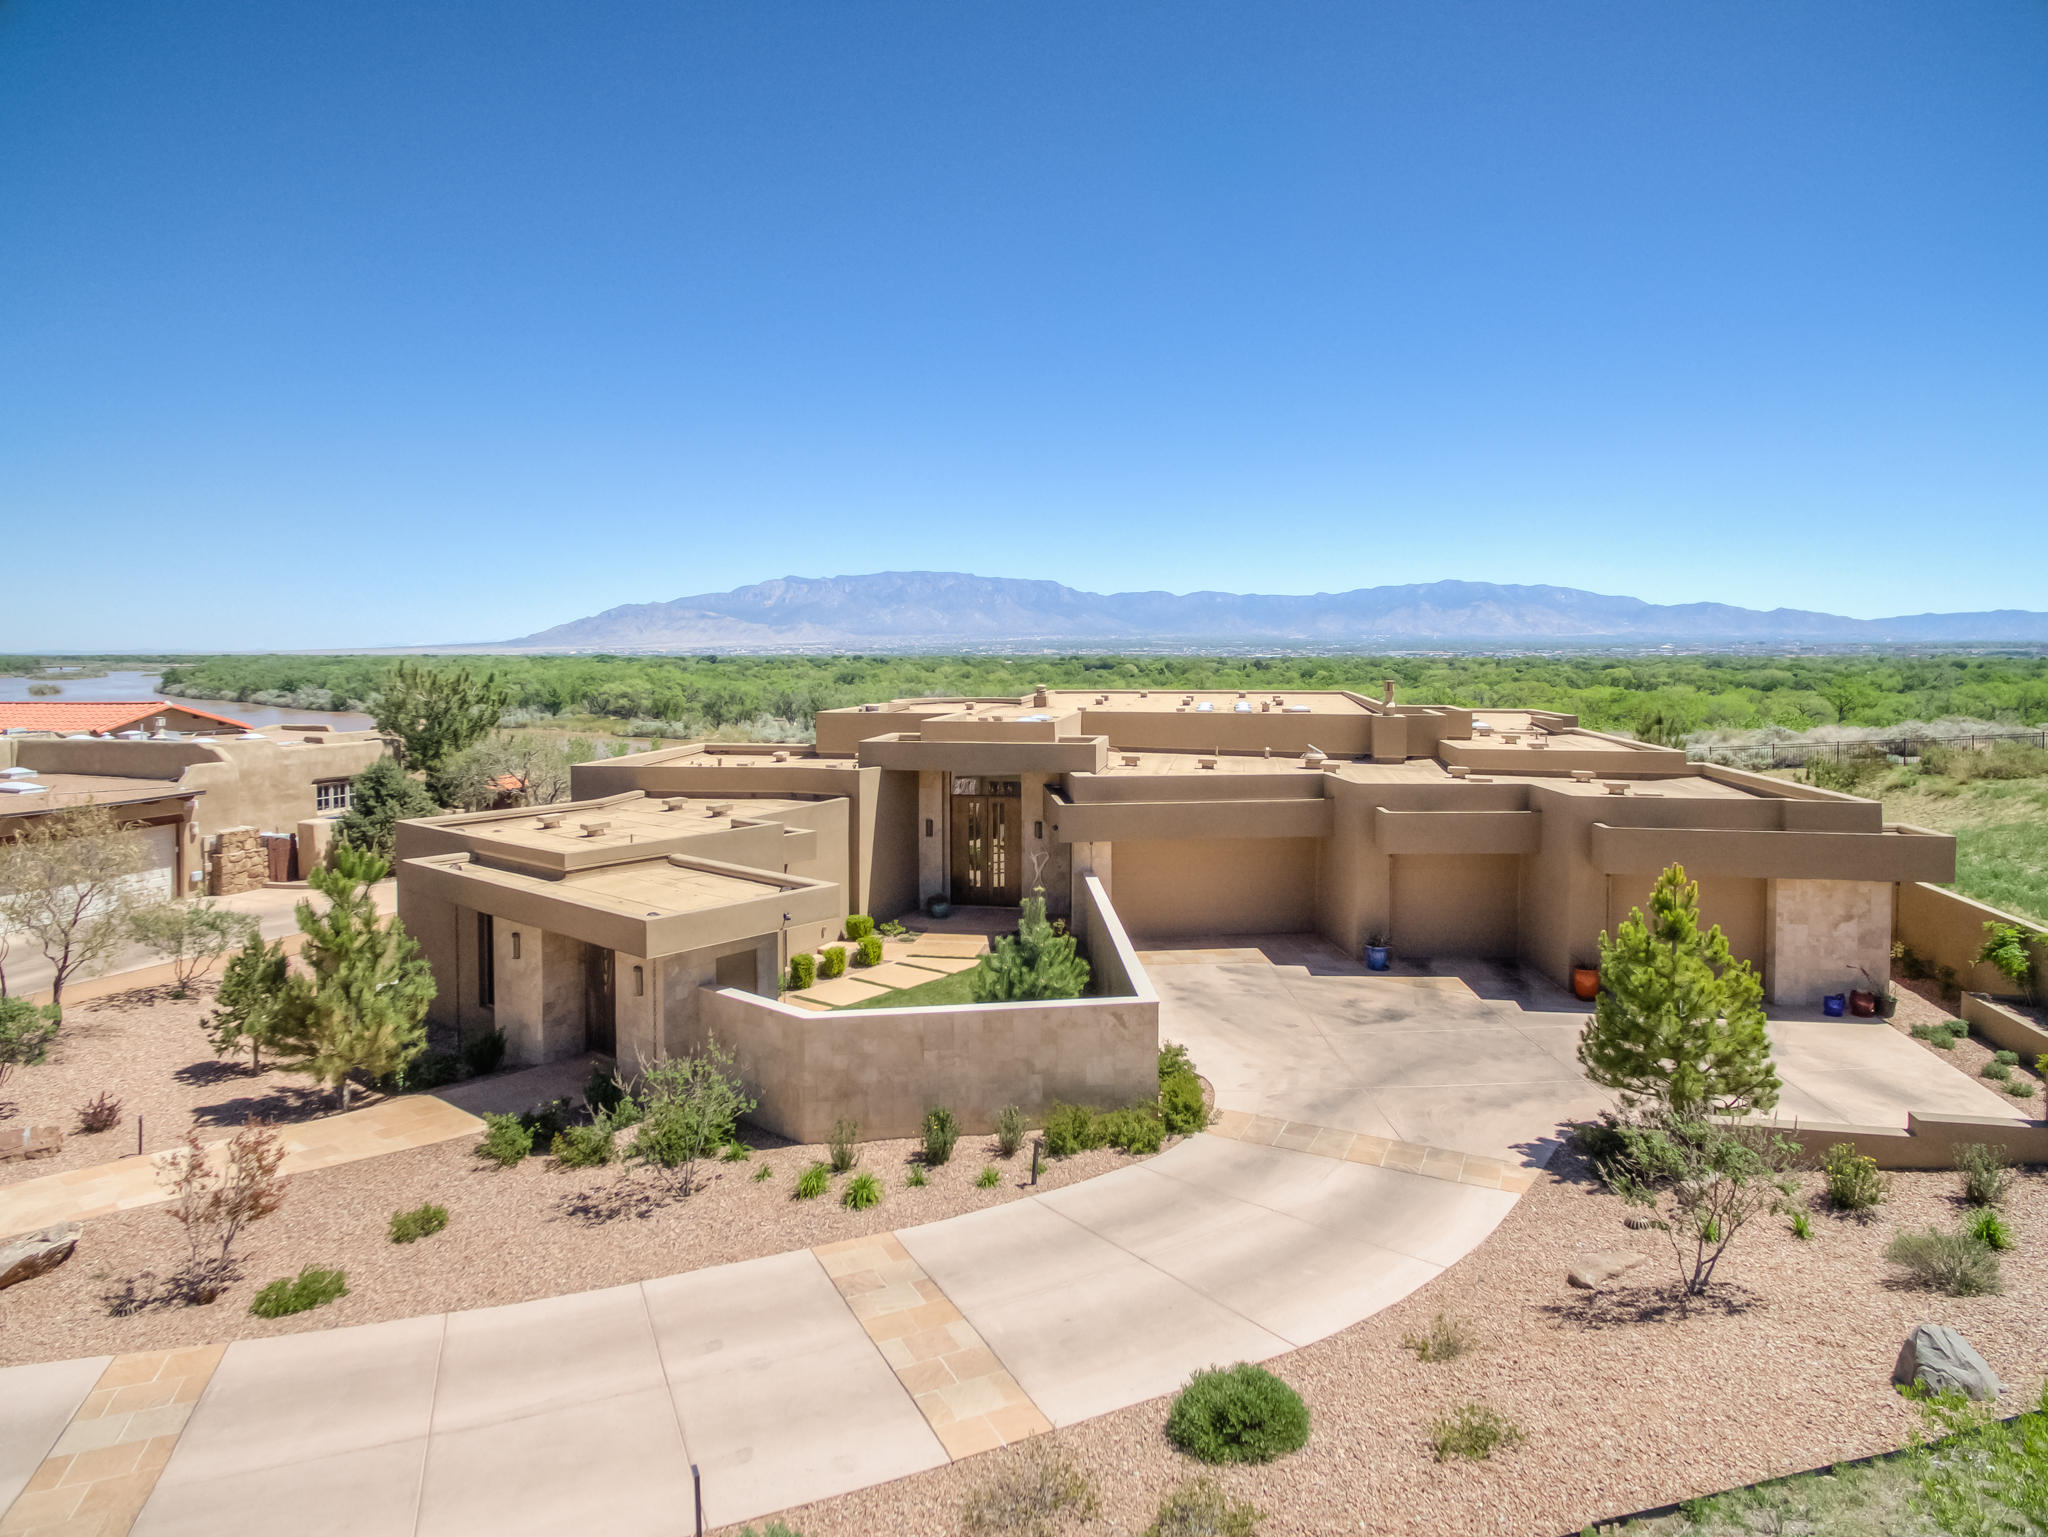 5000 SNOW GOOSE COURT NW, ALBUQUERQUE, NM 87120